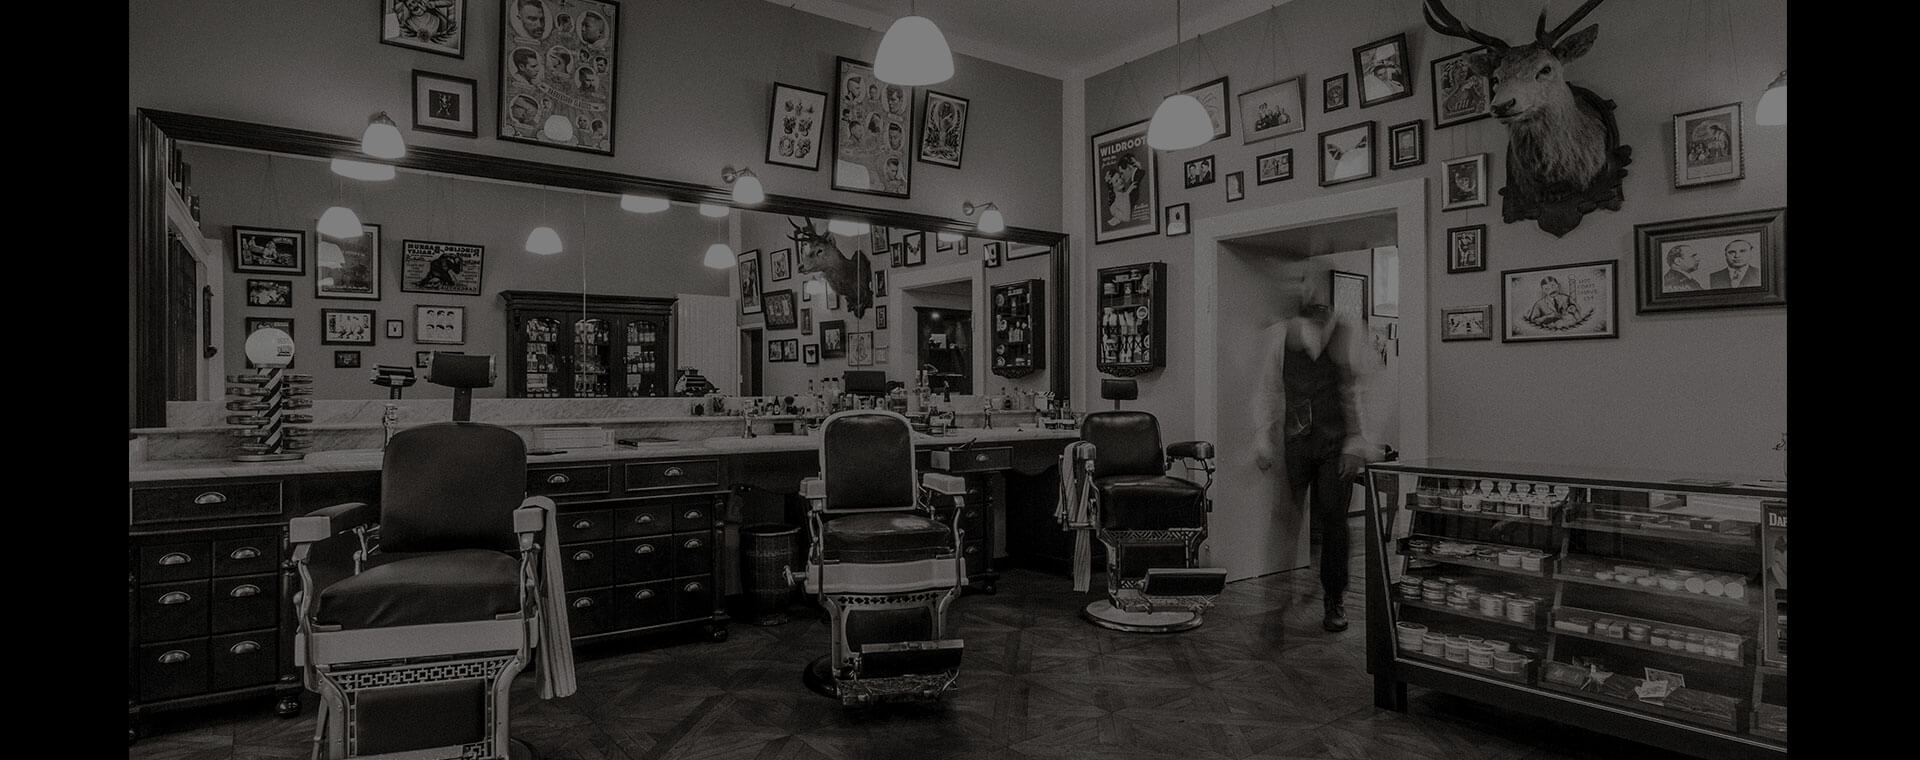 Barbershop Duke Johns Salon